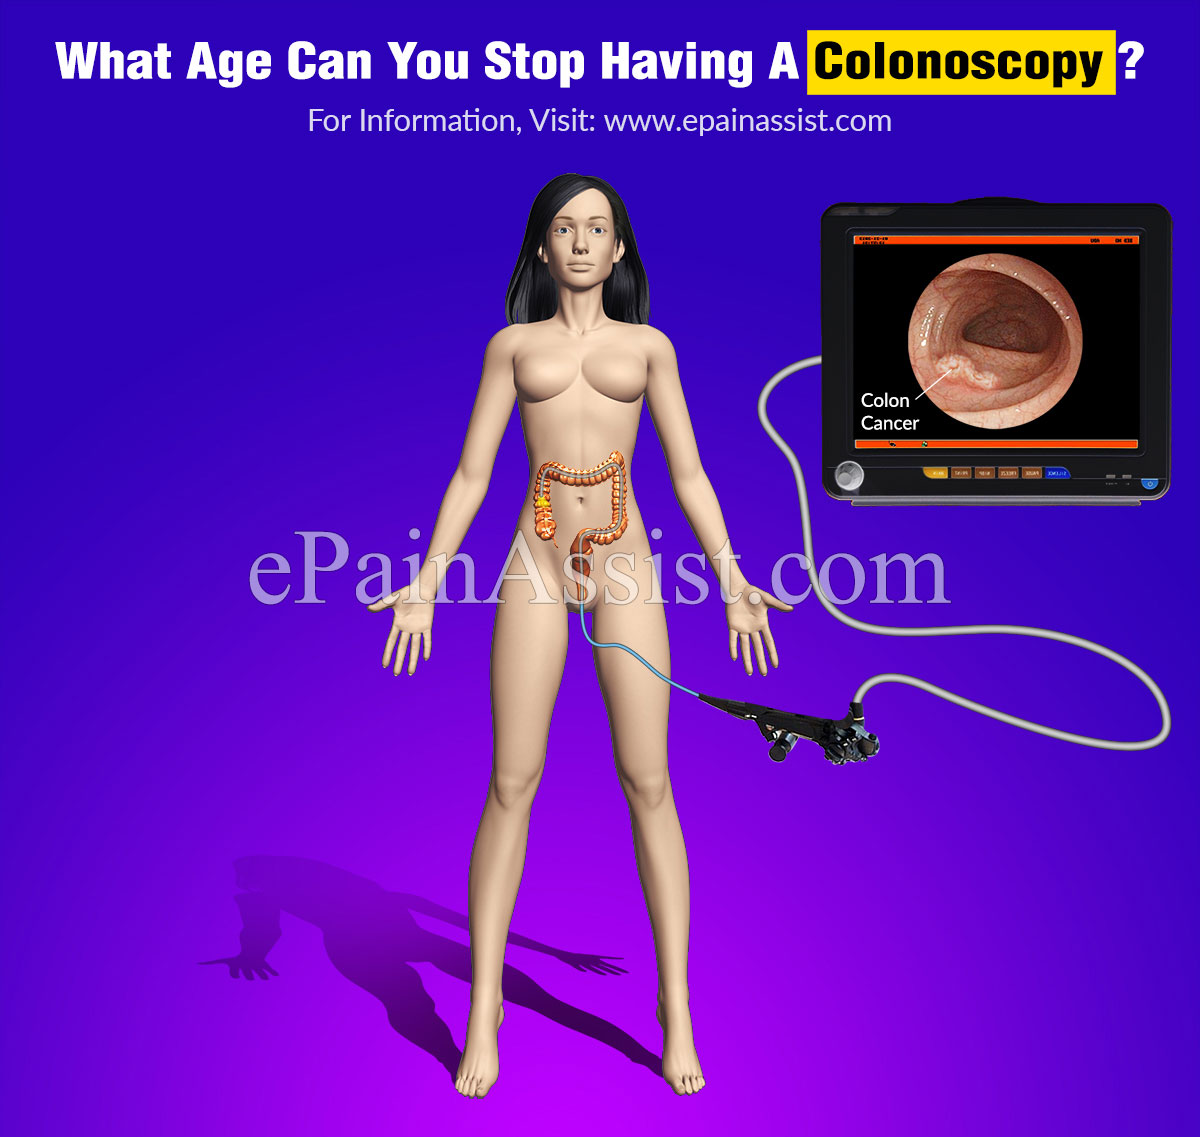 What Age Can You Stop Having A Colonoscopy?